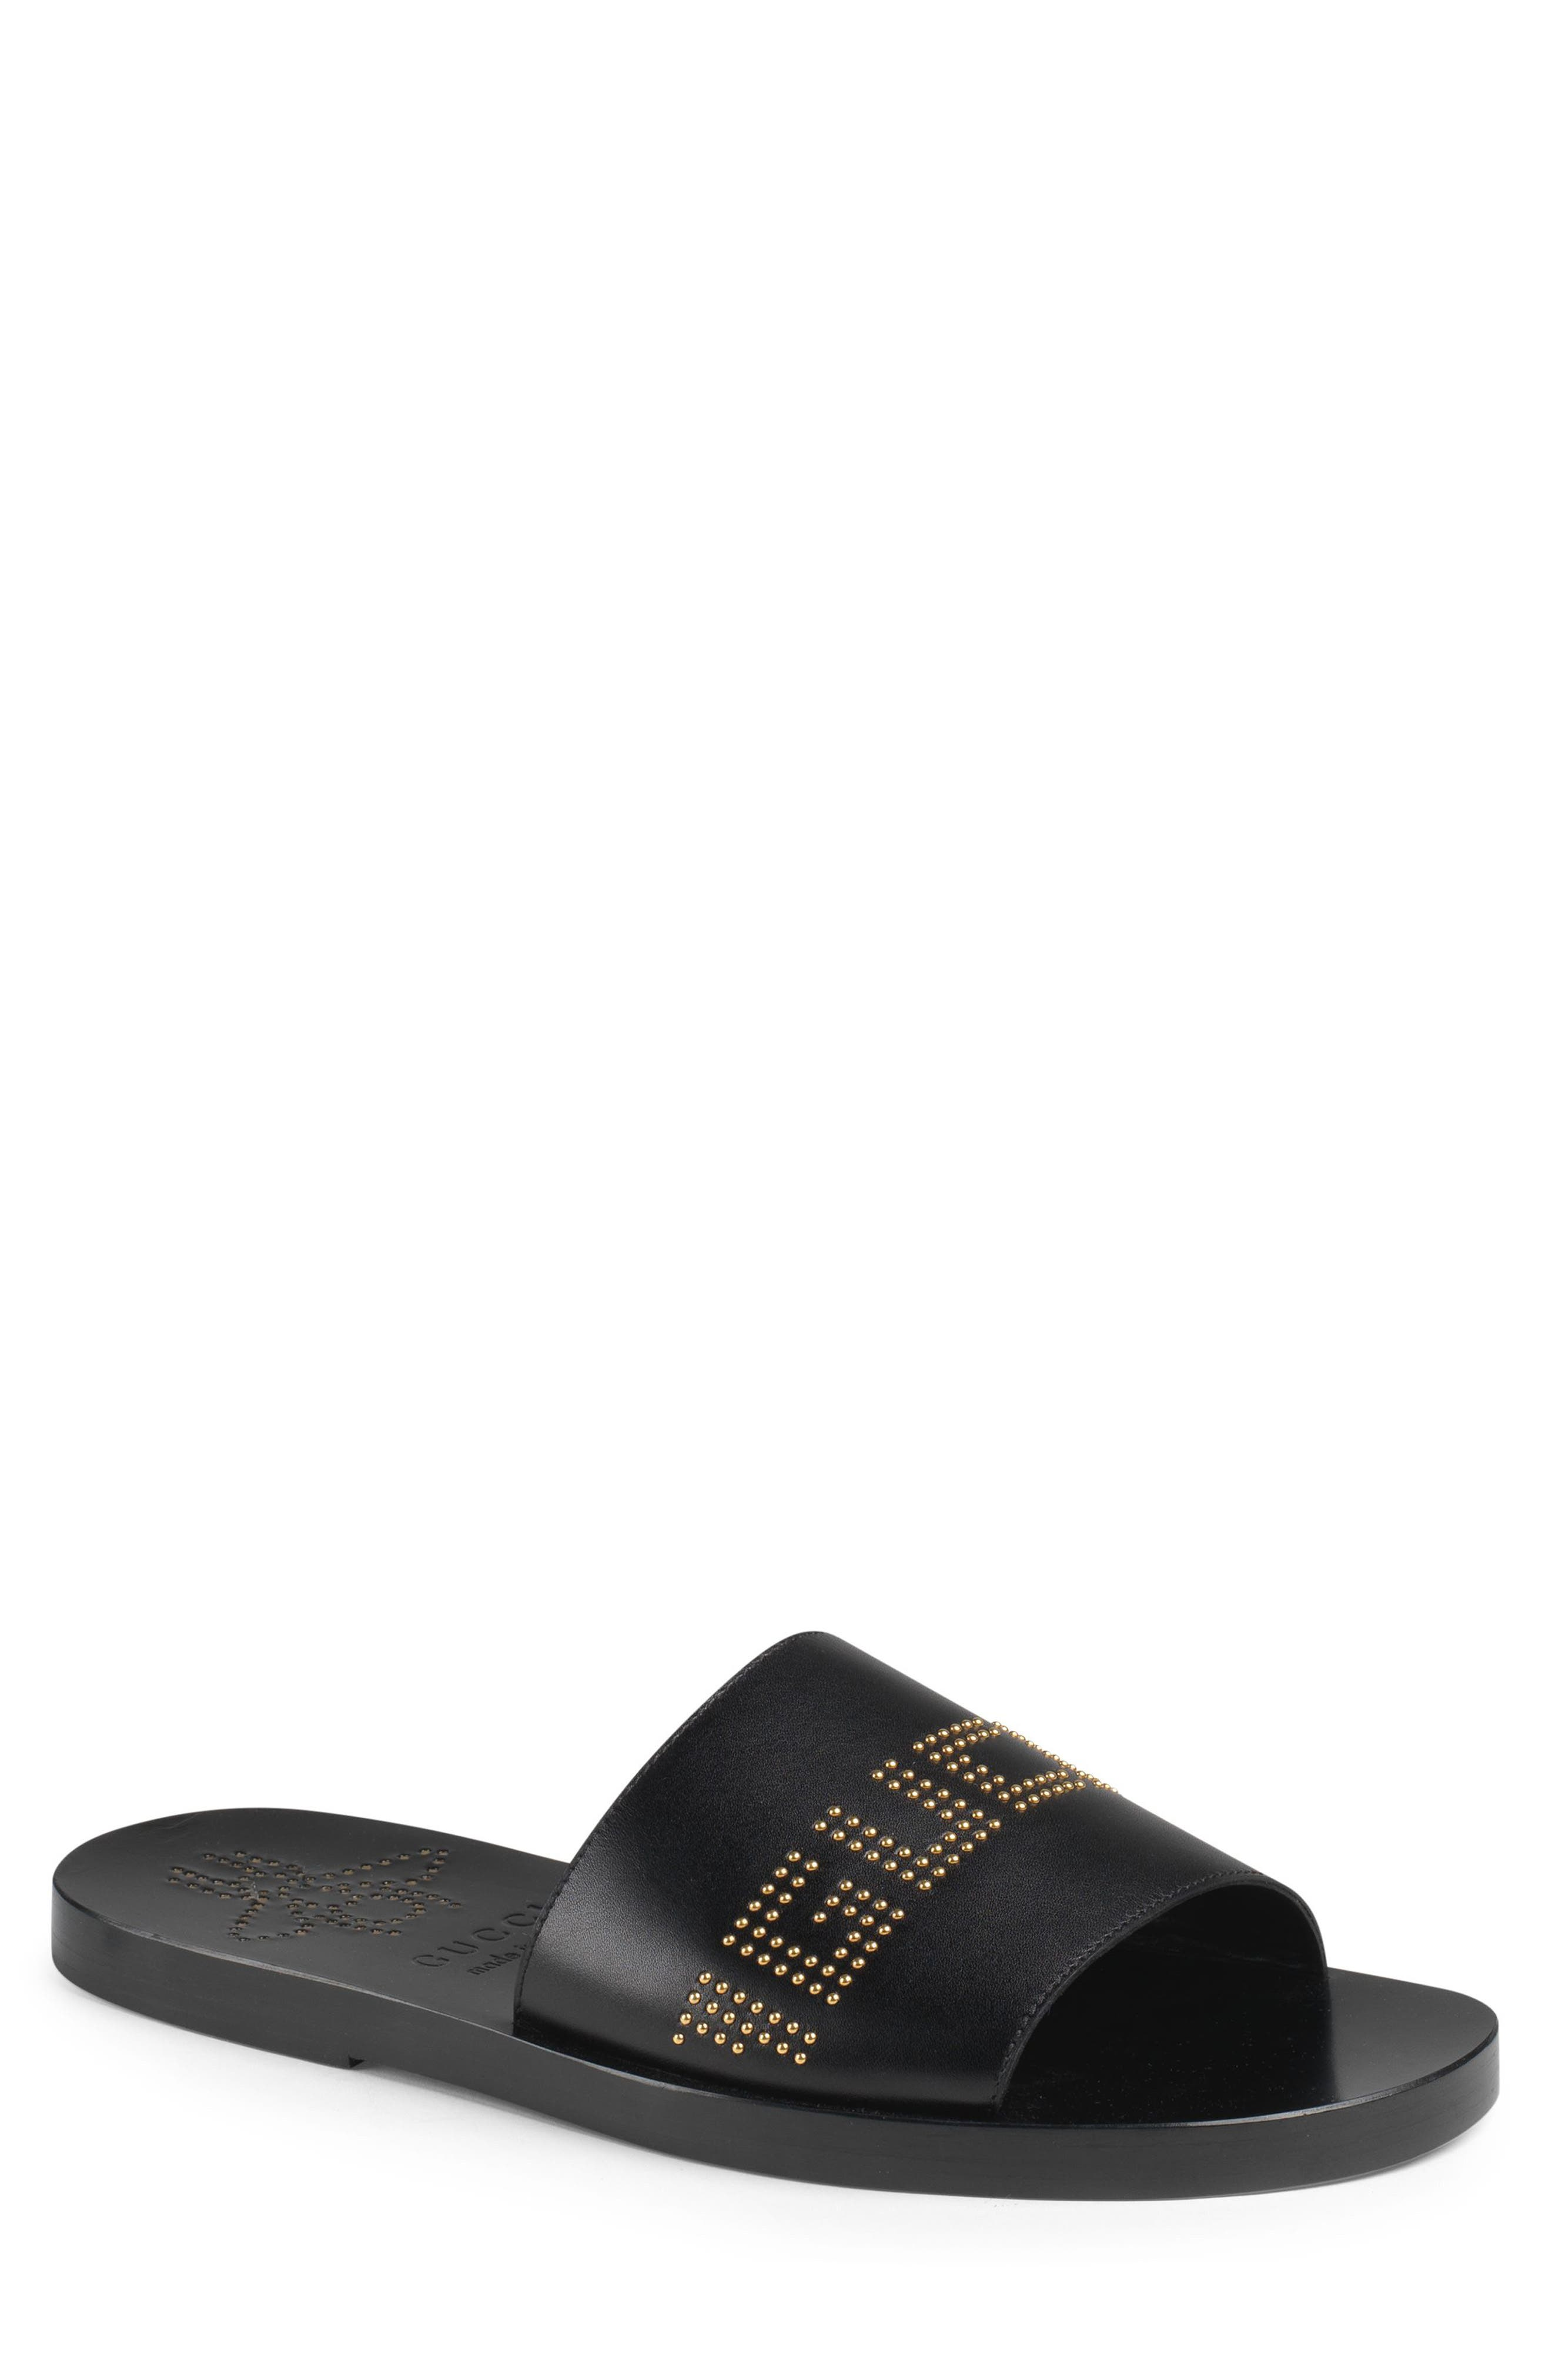 Studded Slide Sandal,                             Main thumbnail 1, color,                             001